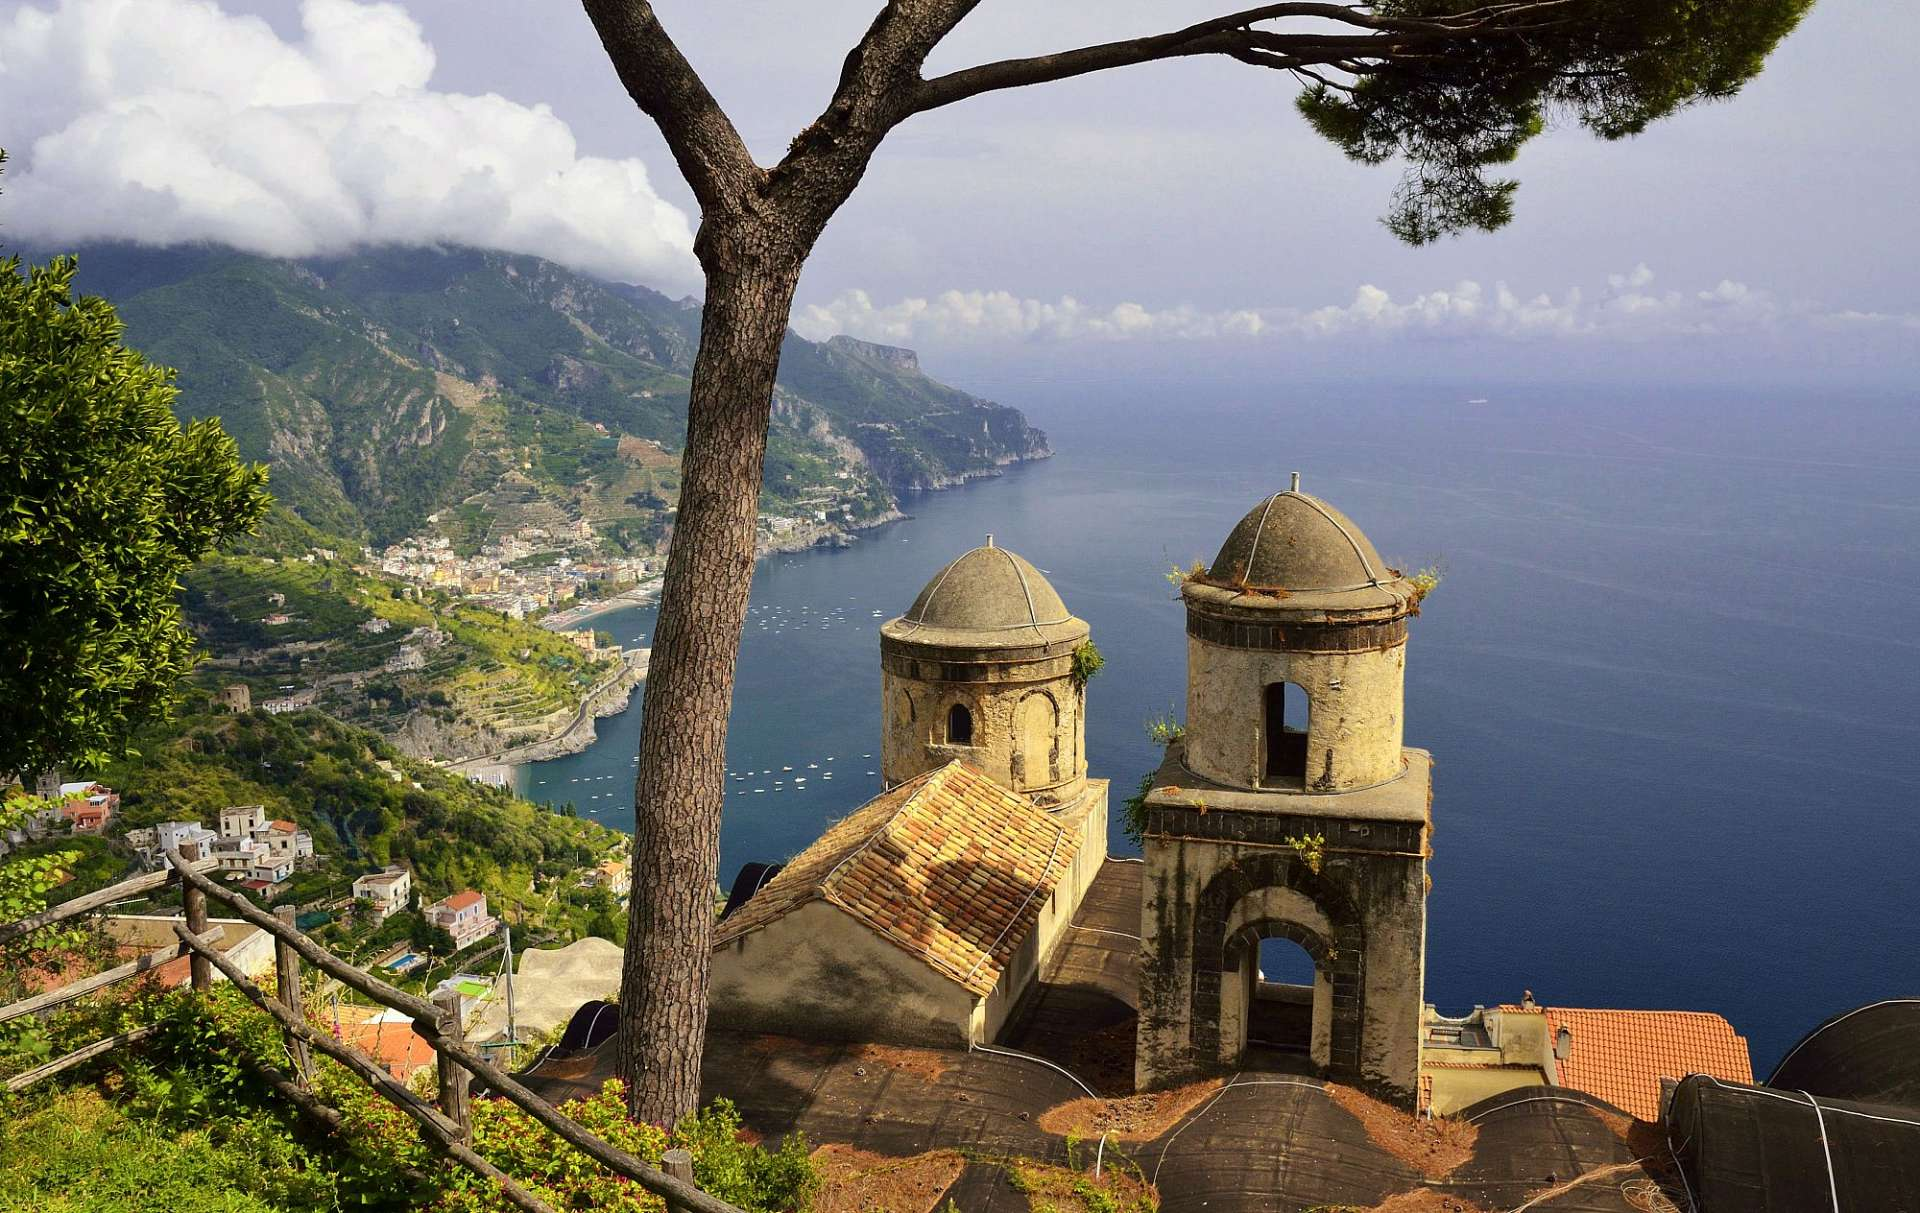 Spectacular views: The Amalfi Coast